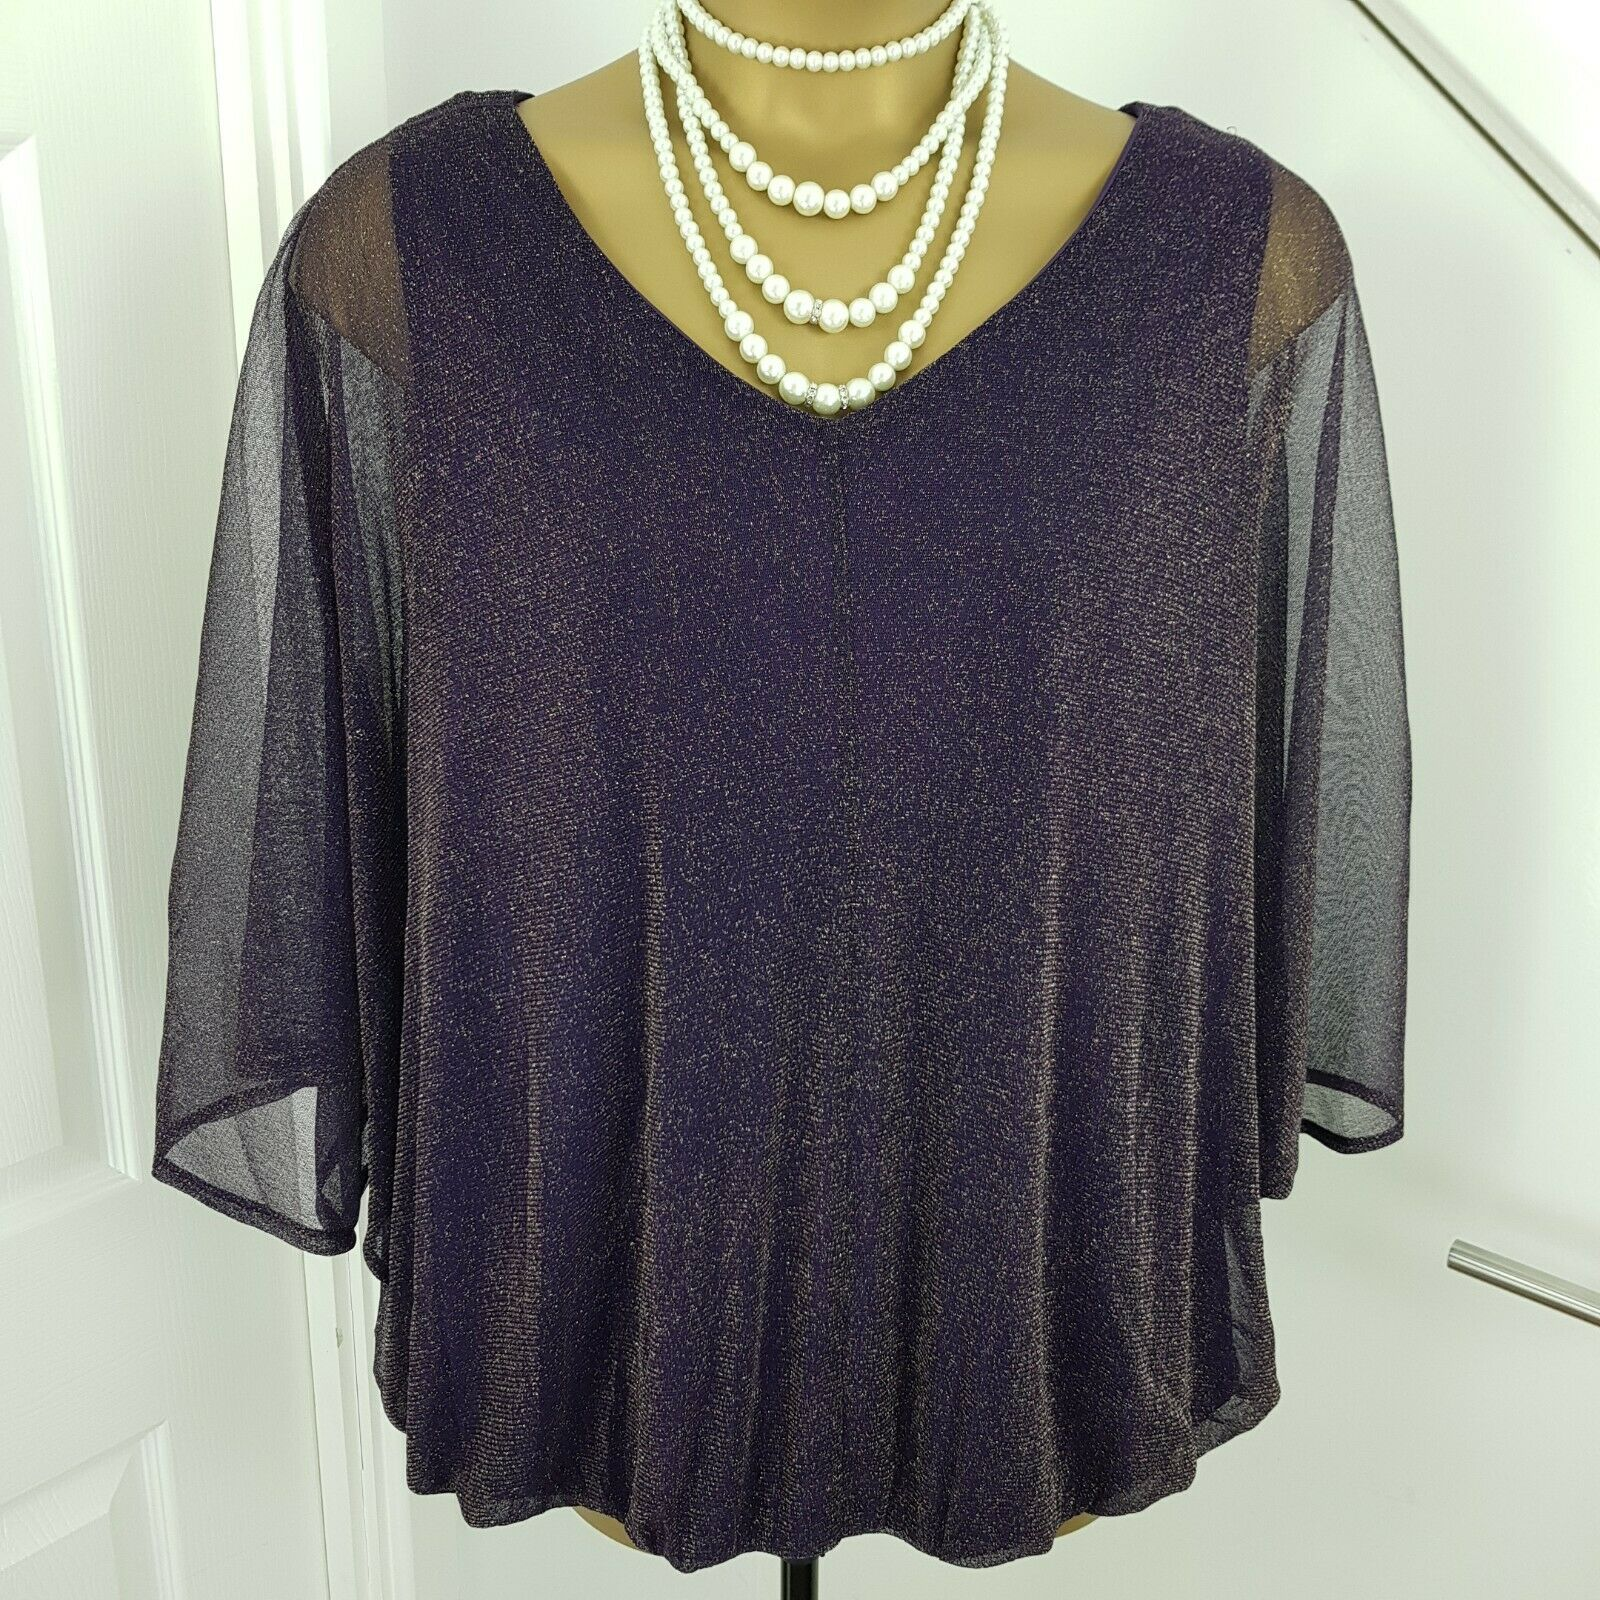 Evie Top Batwings Mother The Bride Special Occasion Shining Purple Size 28